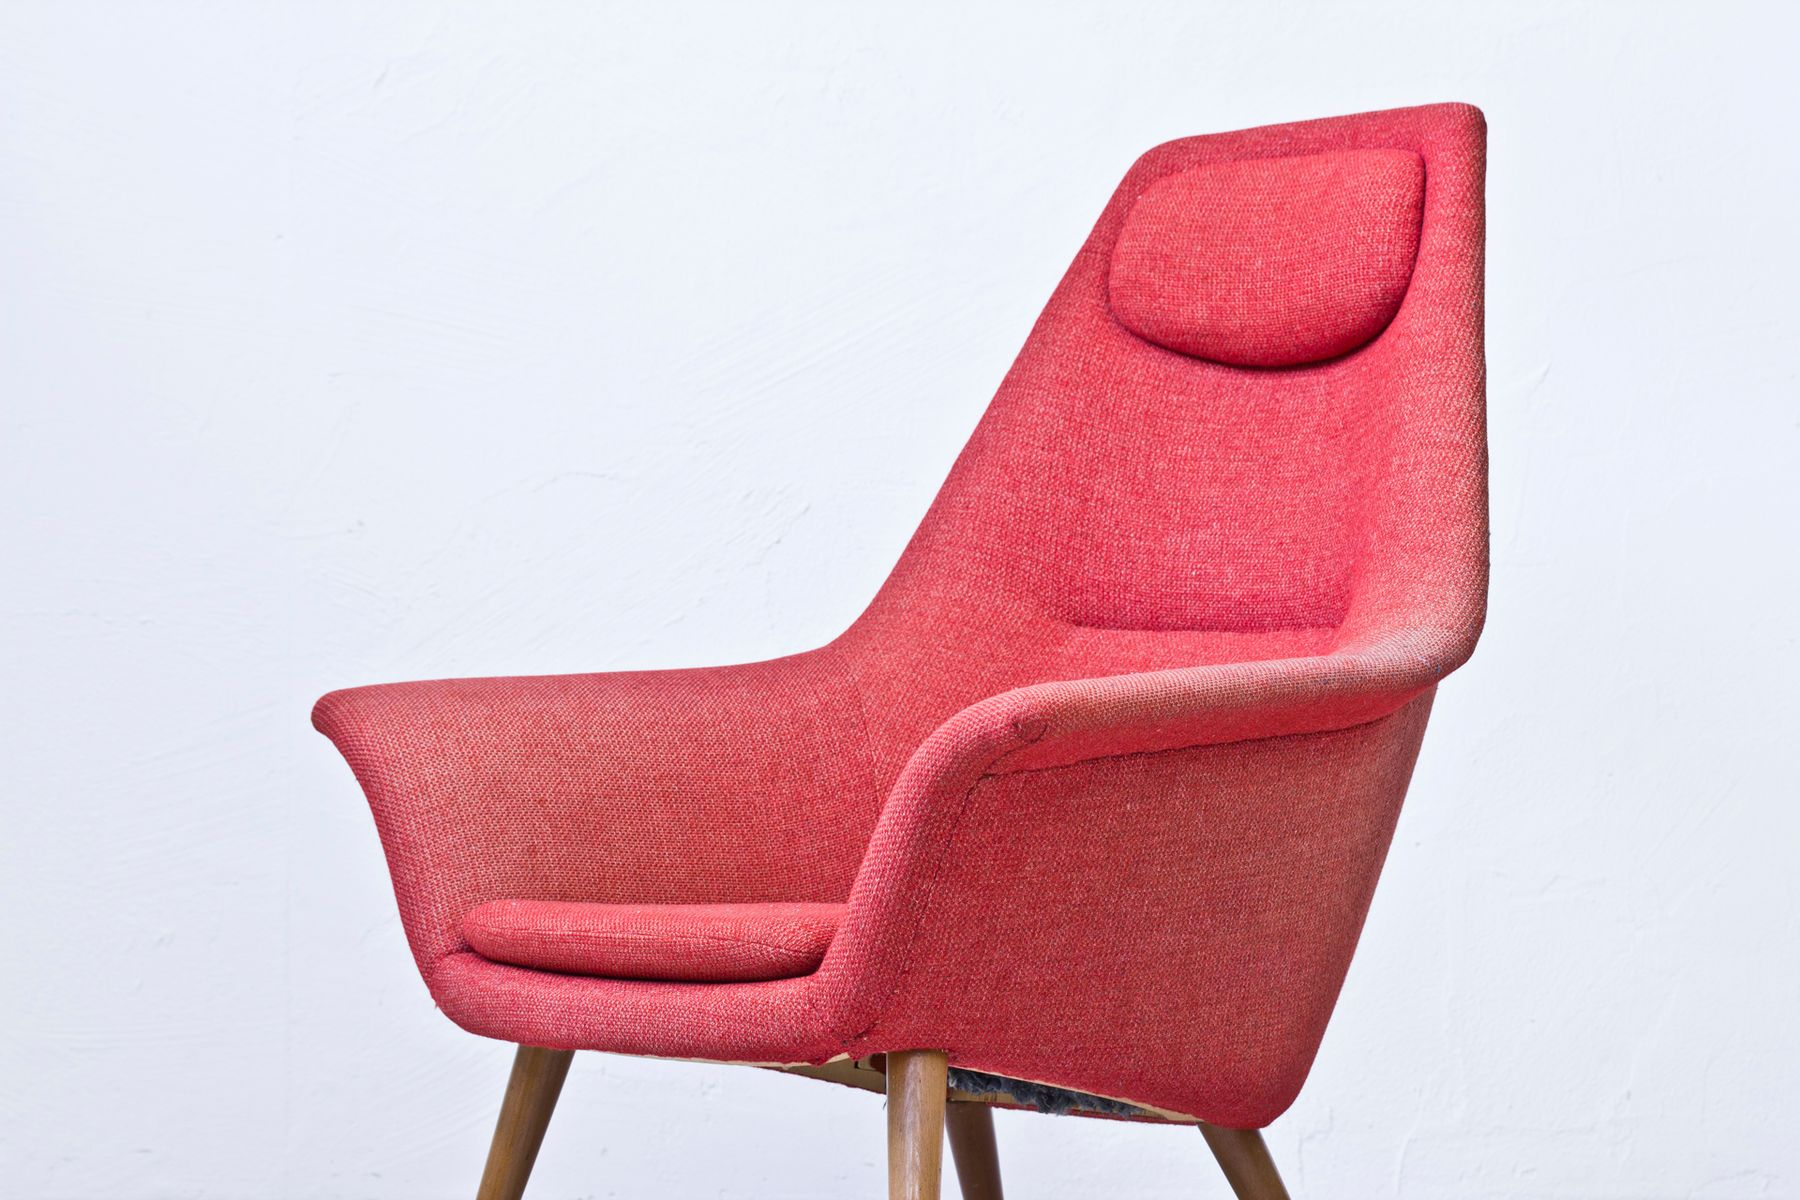 Butterfly Lounge Chair by Torbjørn Afdal for Bjarne Hansen 1950s for sale at